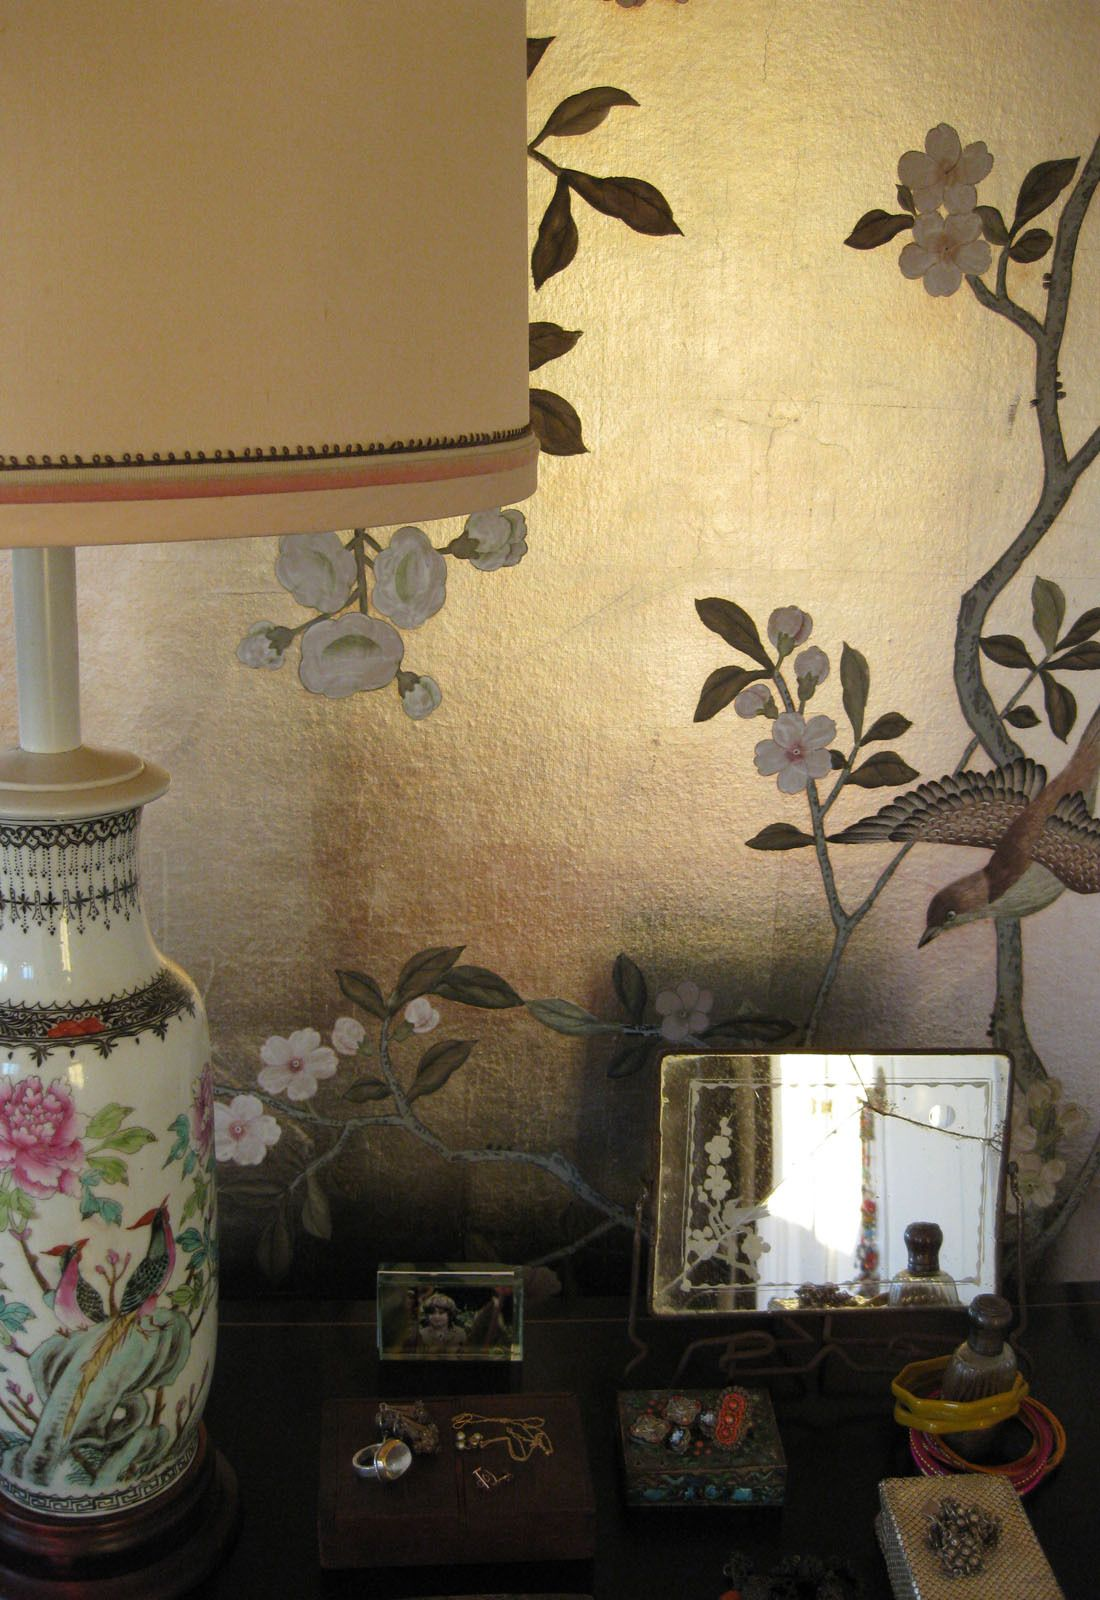 Green Home Tour: Erica Tanov's Secondhand Beauty